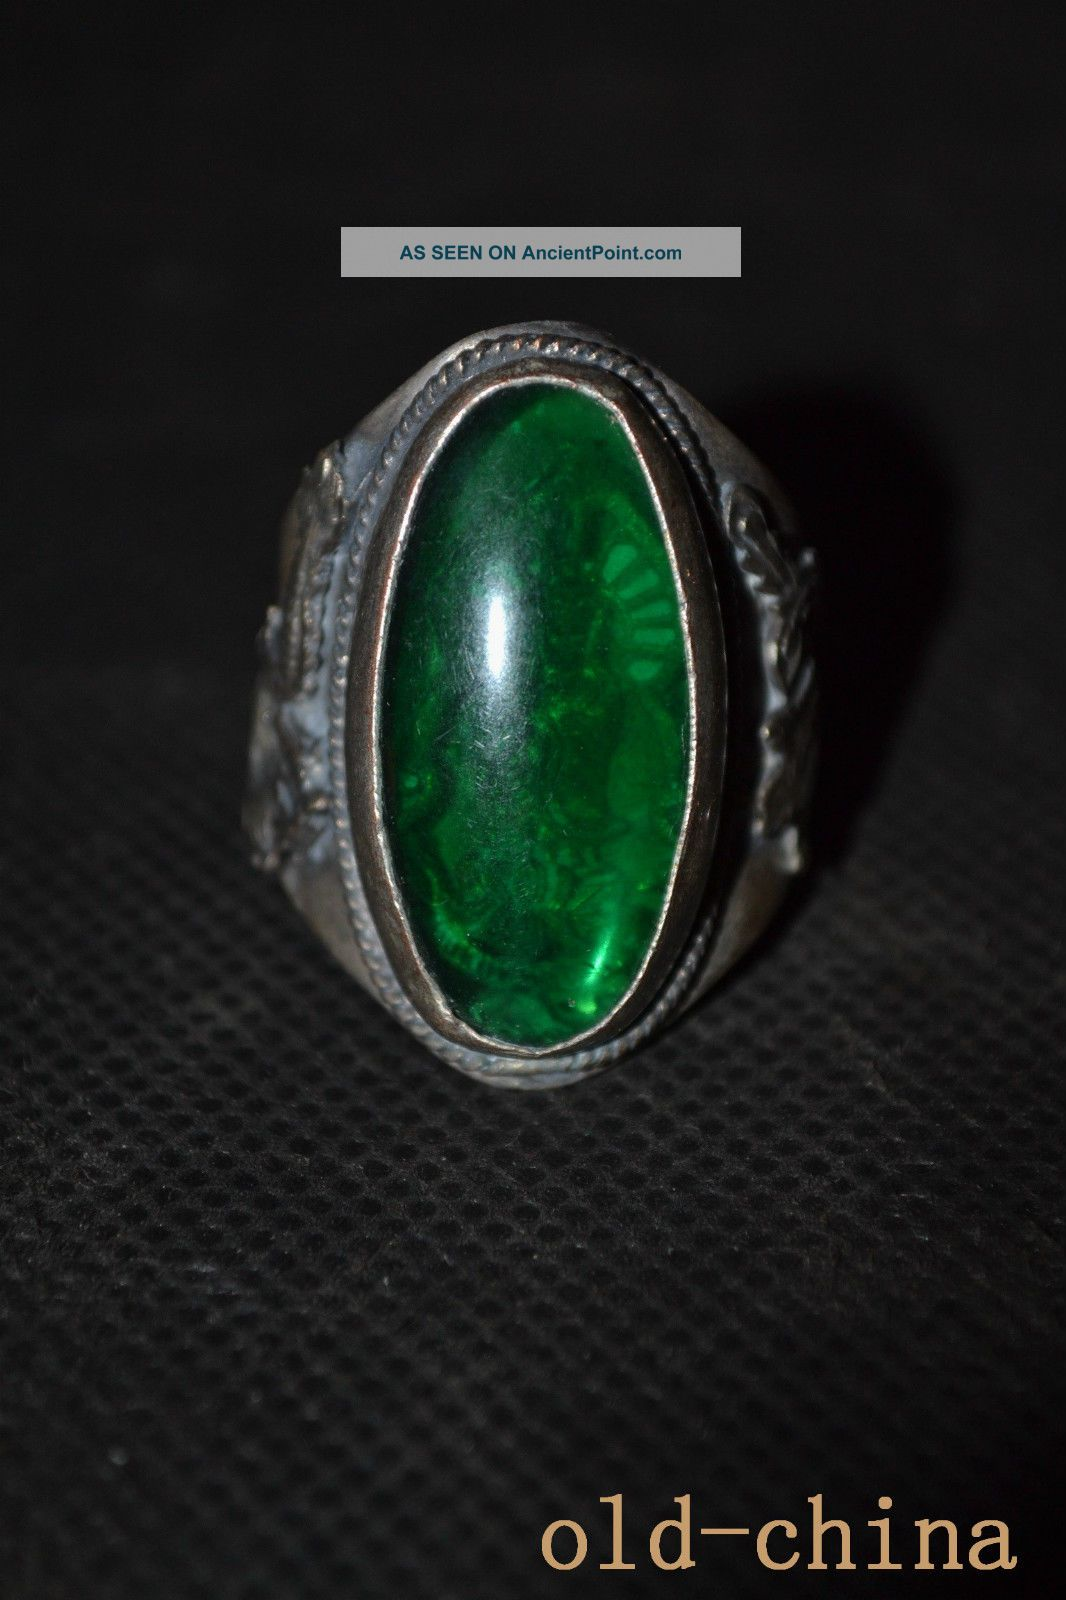 China Handwork Old Tibet Silver Carving Dragon Inlay Green Jade Kwan - Yin Ring Jade/ Hardstone photo